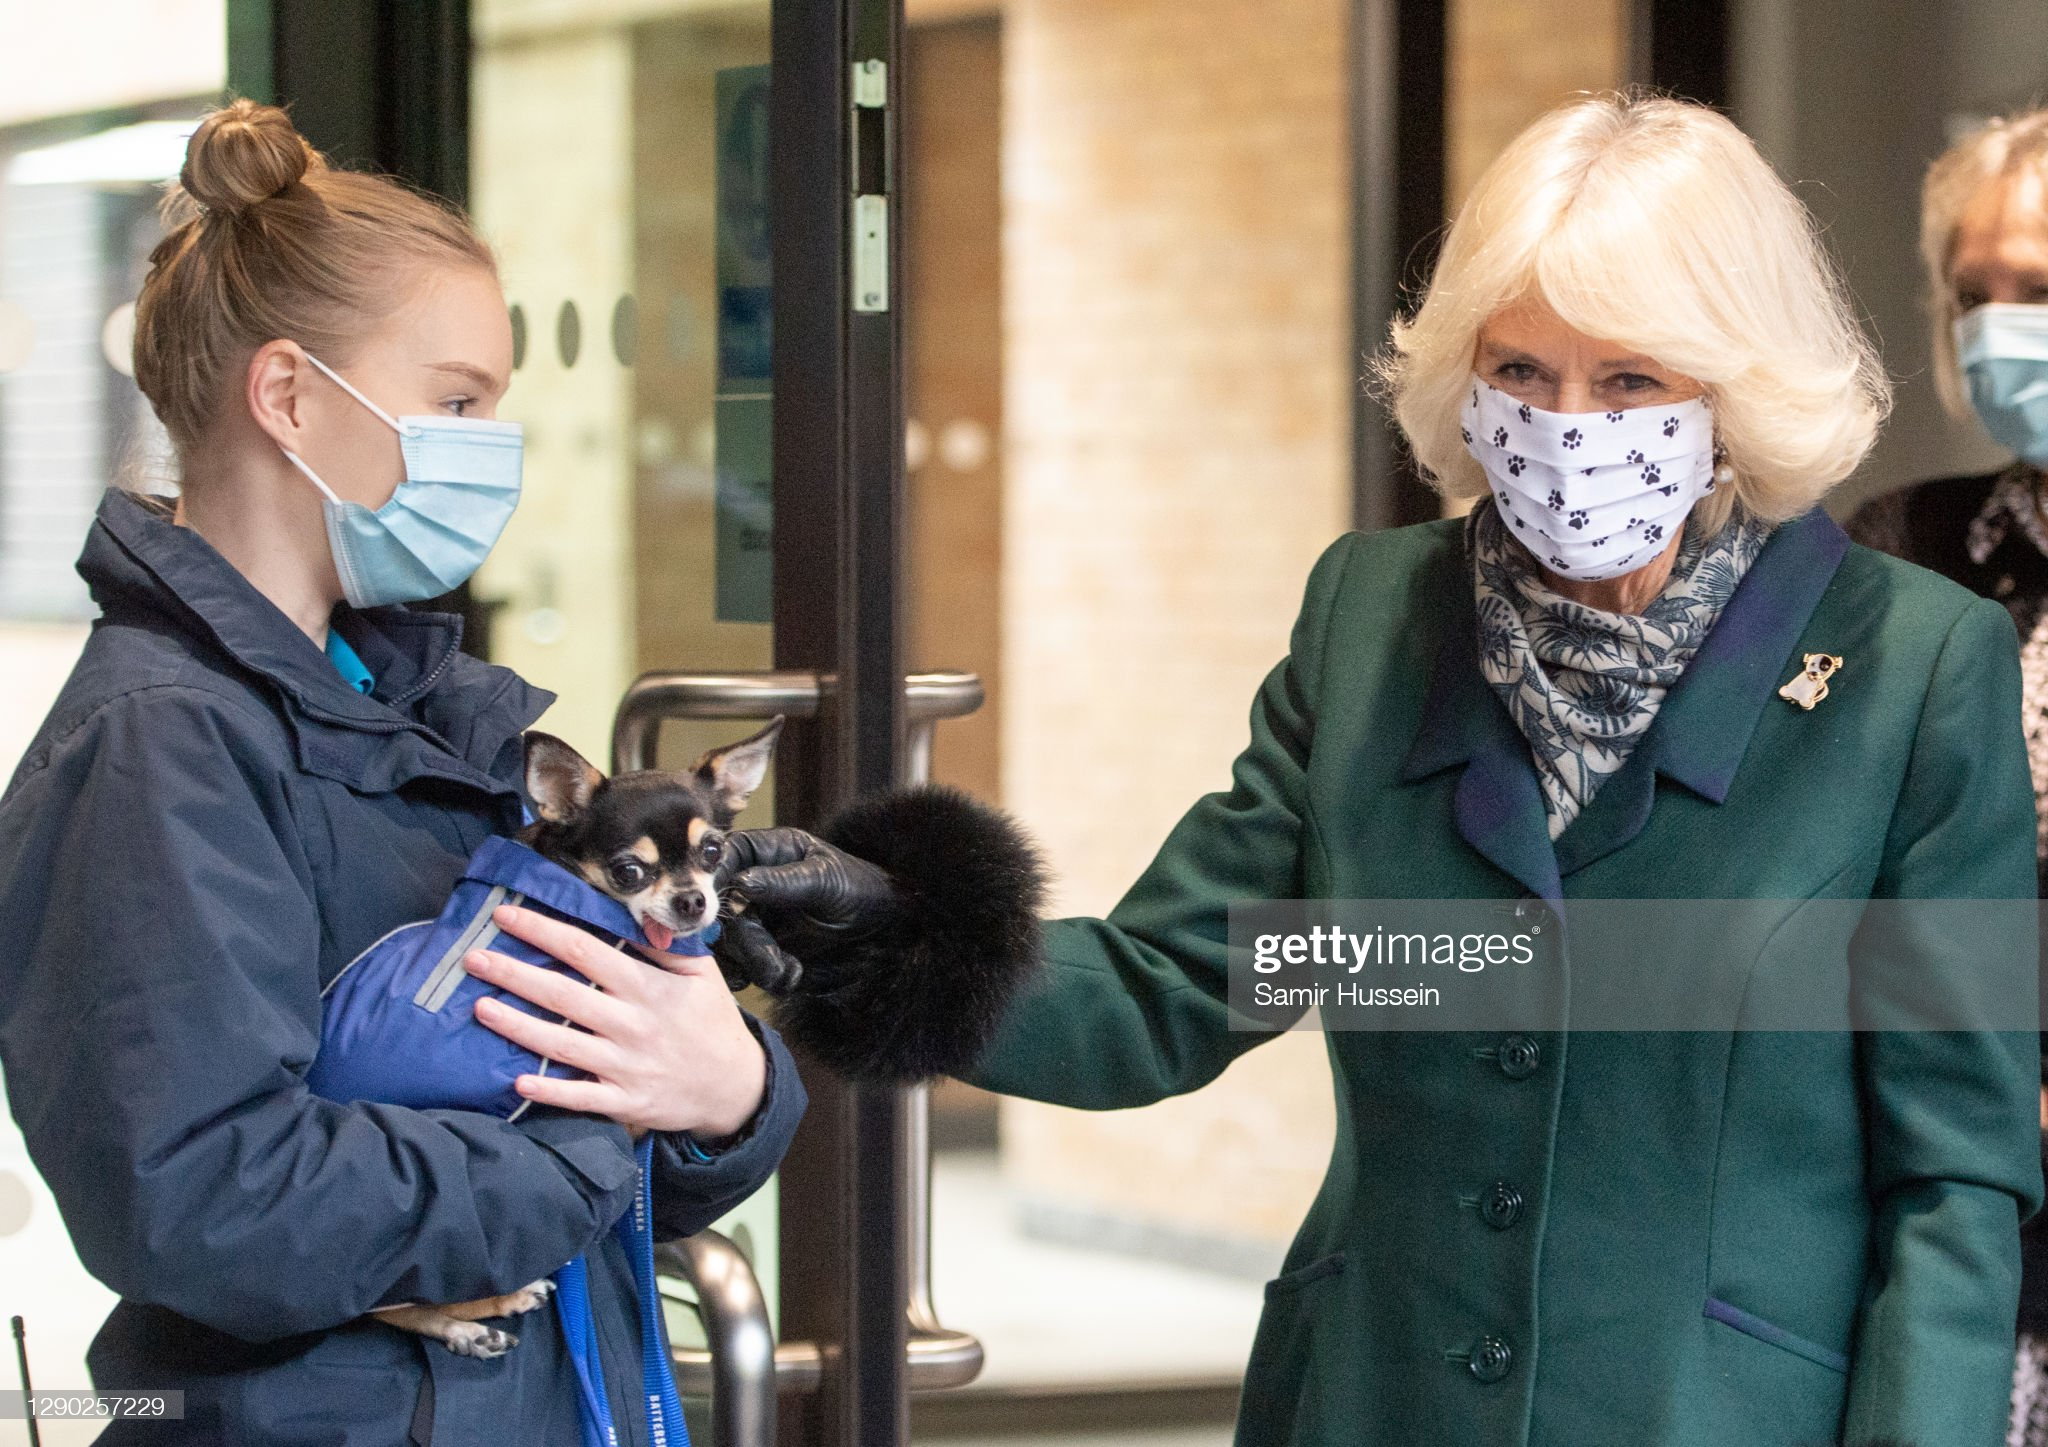 camilla-duchess-of-cornwall-visits-battersea-dogs-home-in-windsor-on-picture-id1290257229